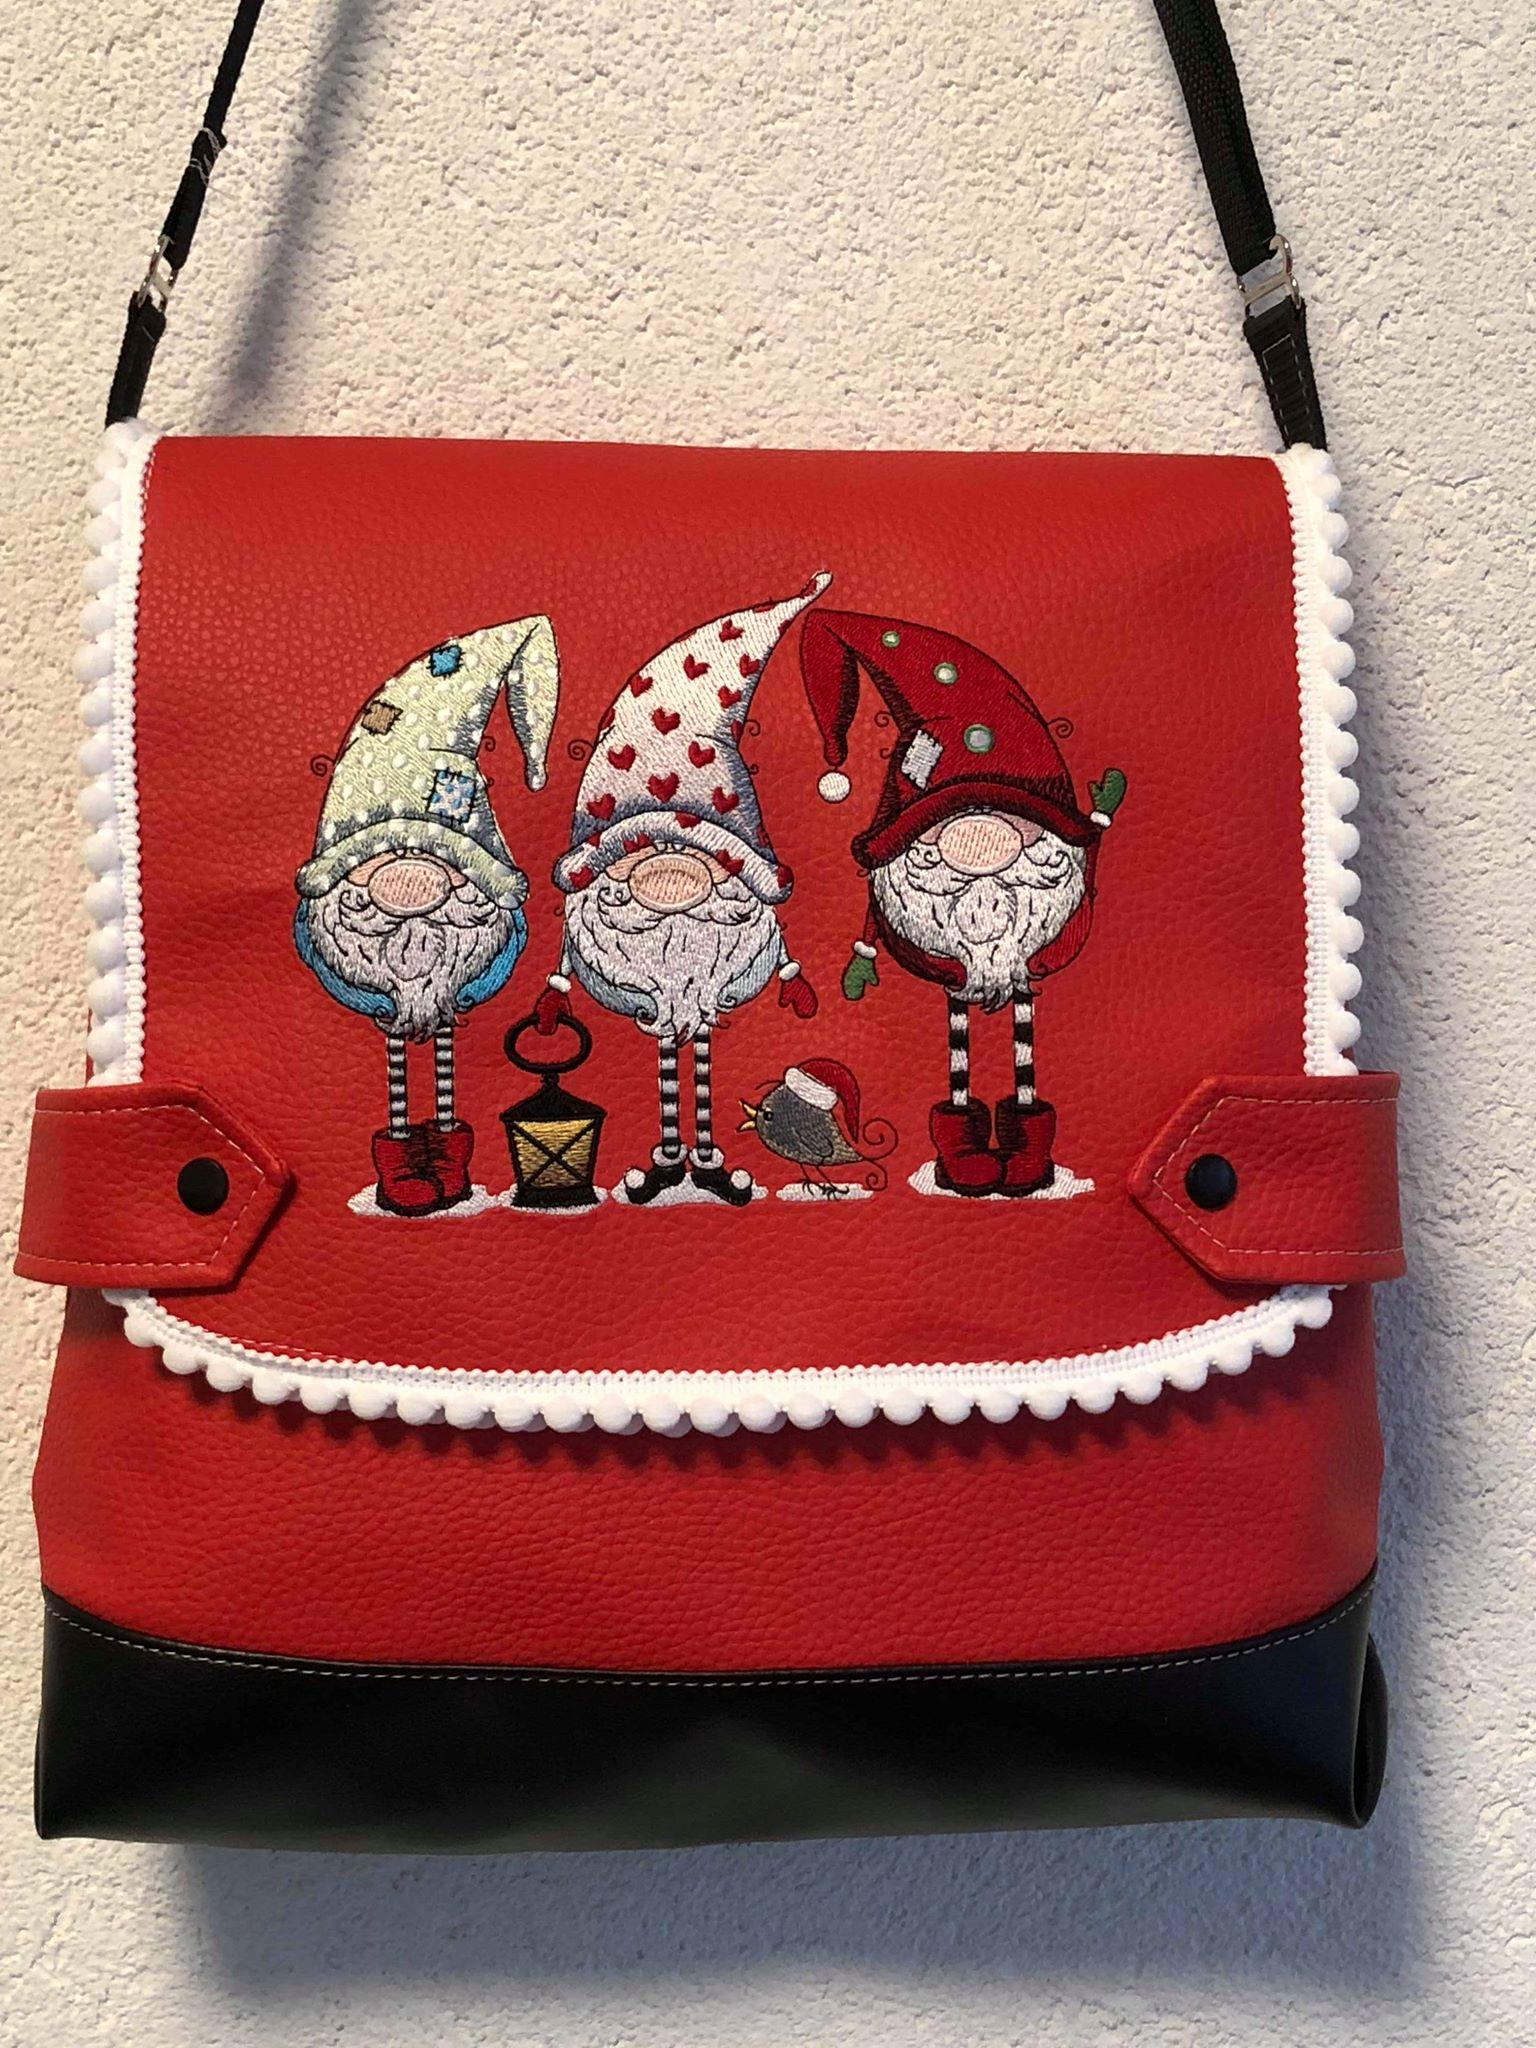 Embroidered bag with Three gnomes design